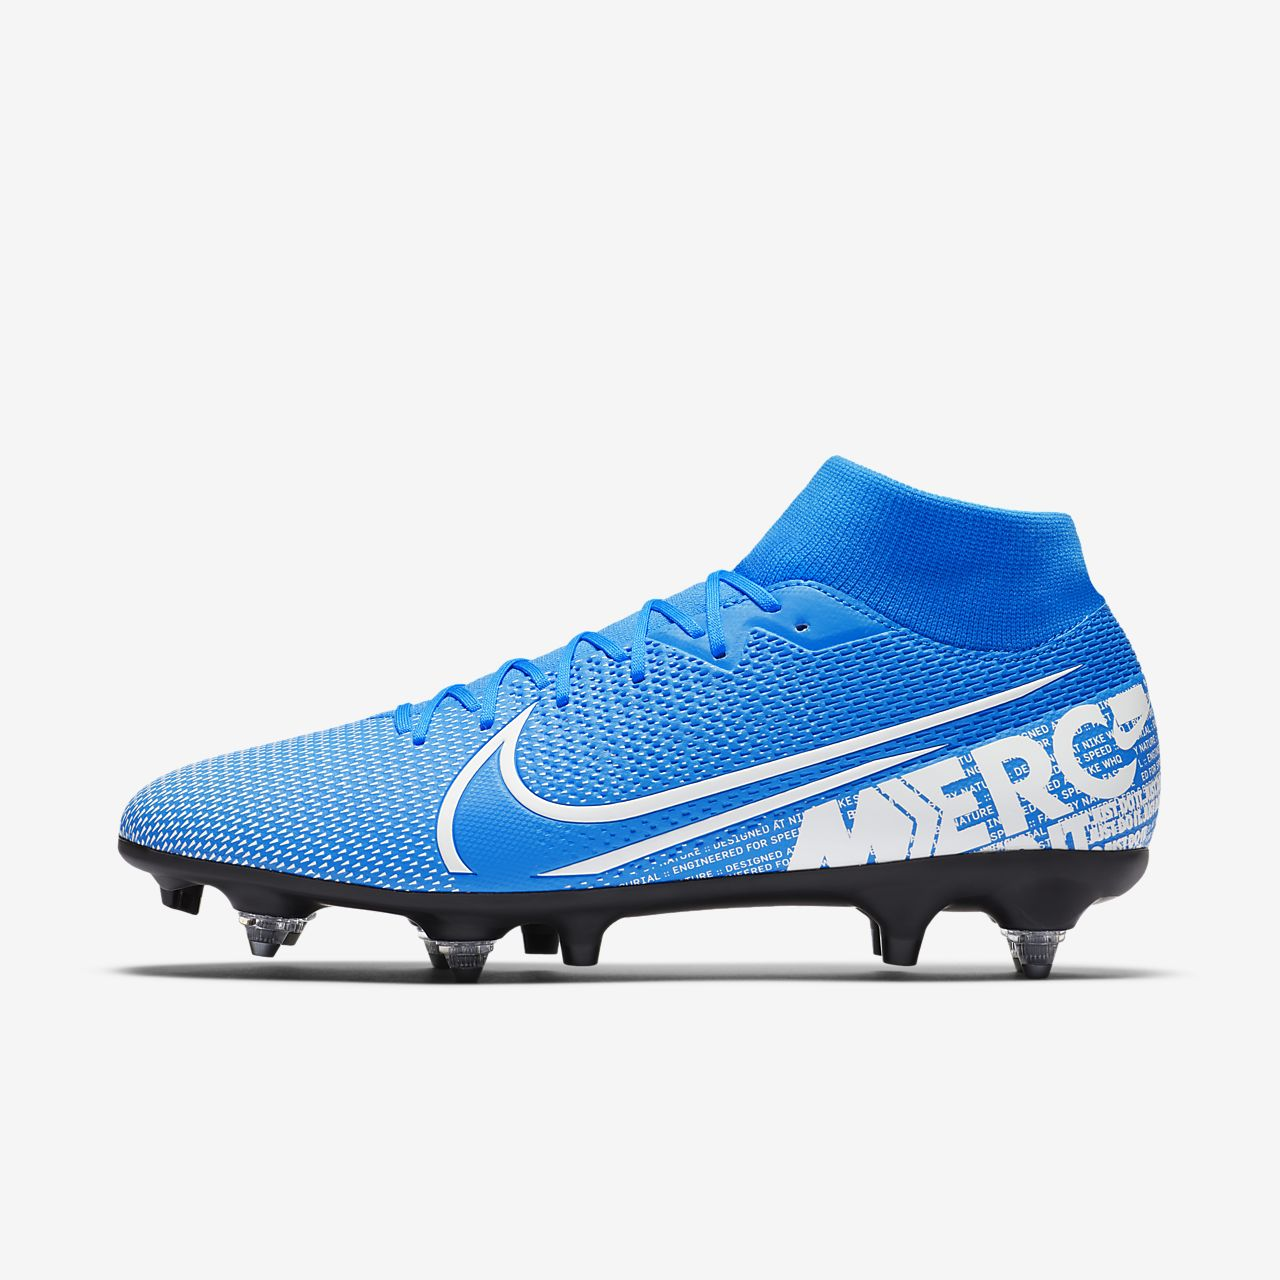 Chaussure de football à crampons pour terrain gras Nike Mercurial Superfly 7 Academy SG PRO Anti Clog Traction